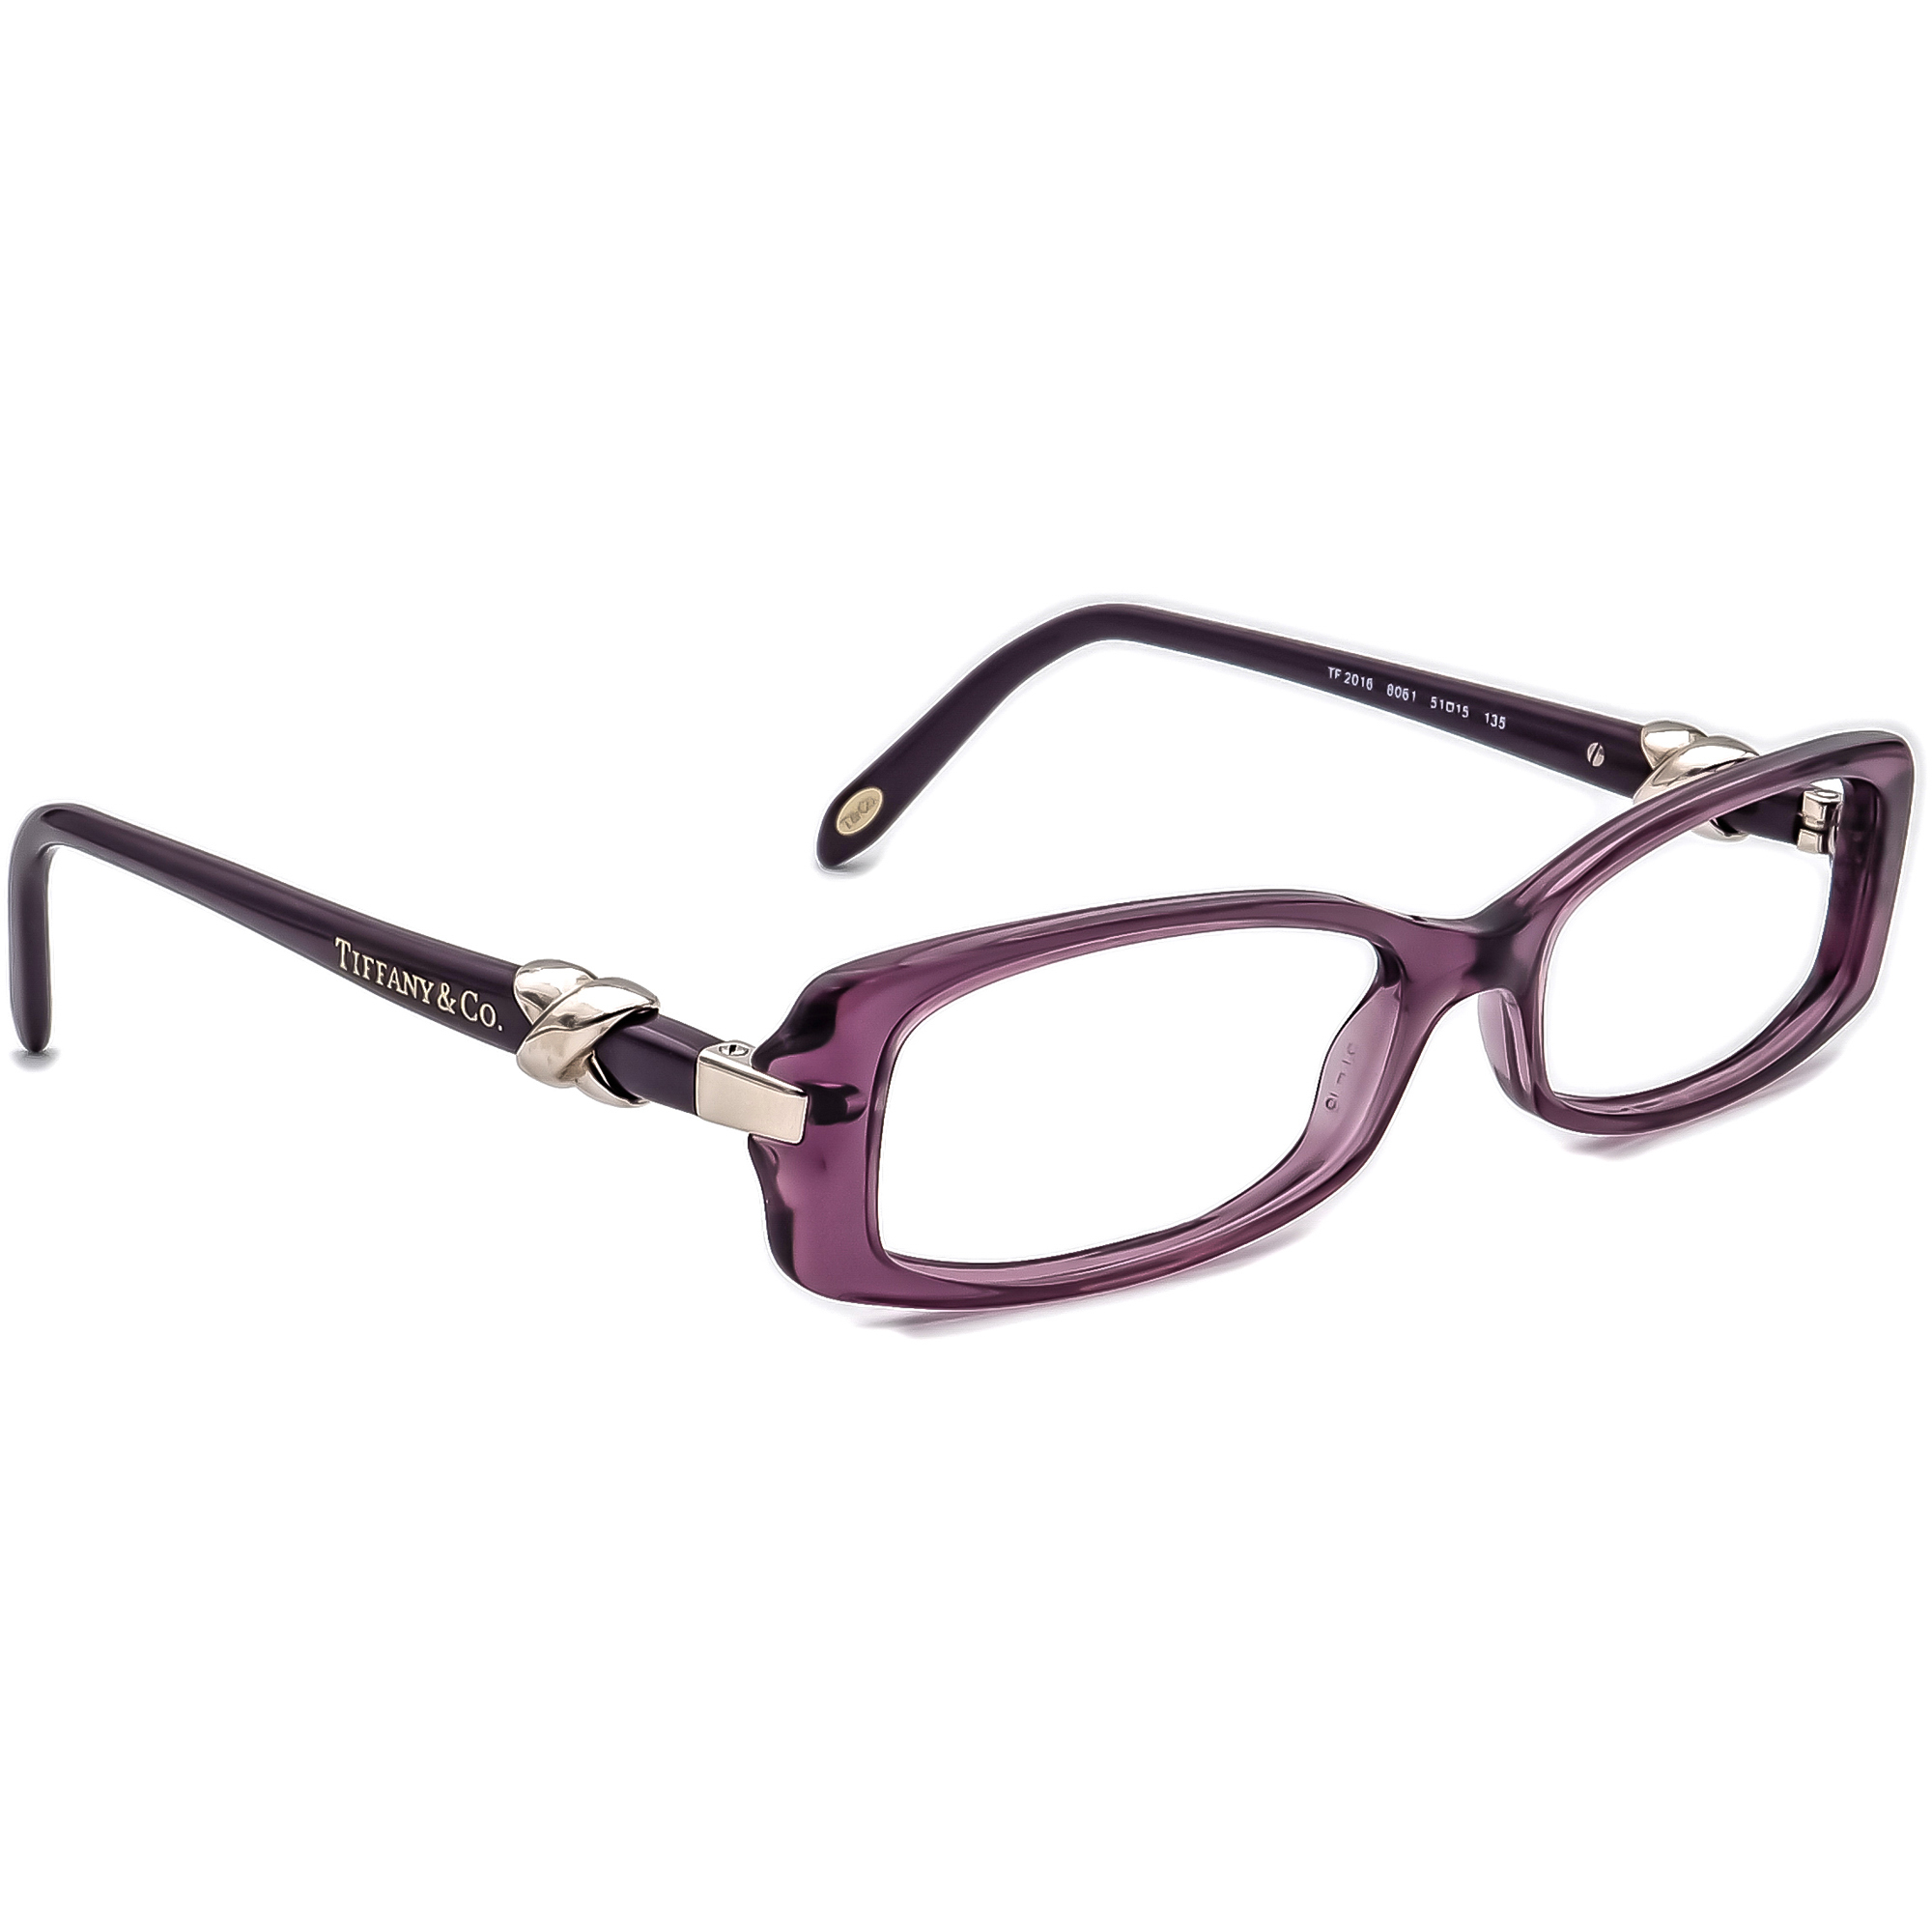 Tiffany & Co. TF 2016 8061 Eyeglasses